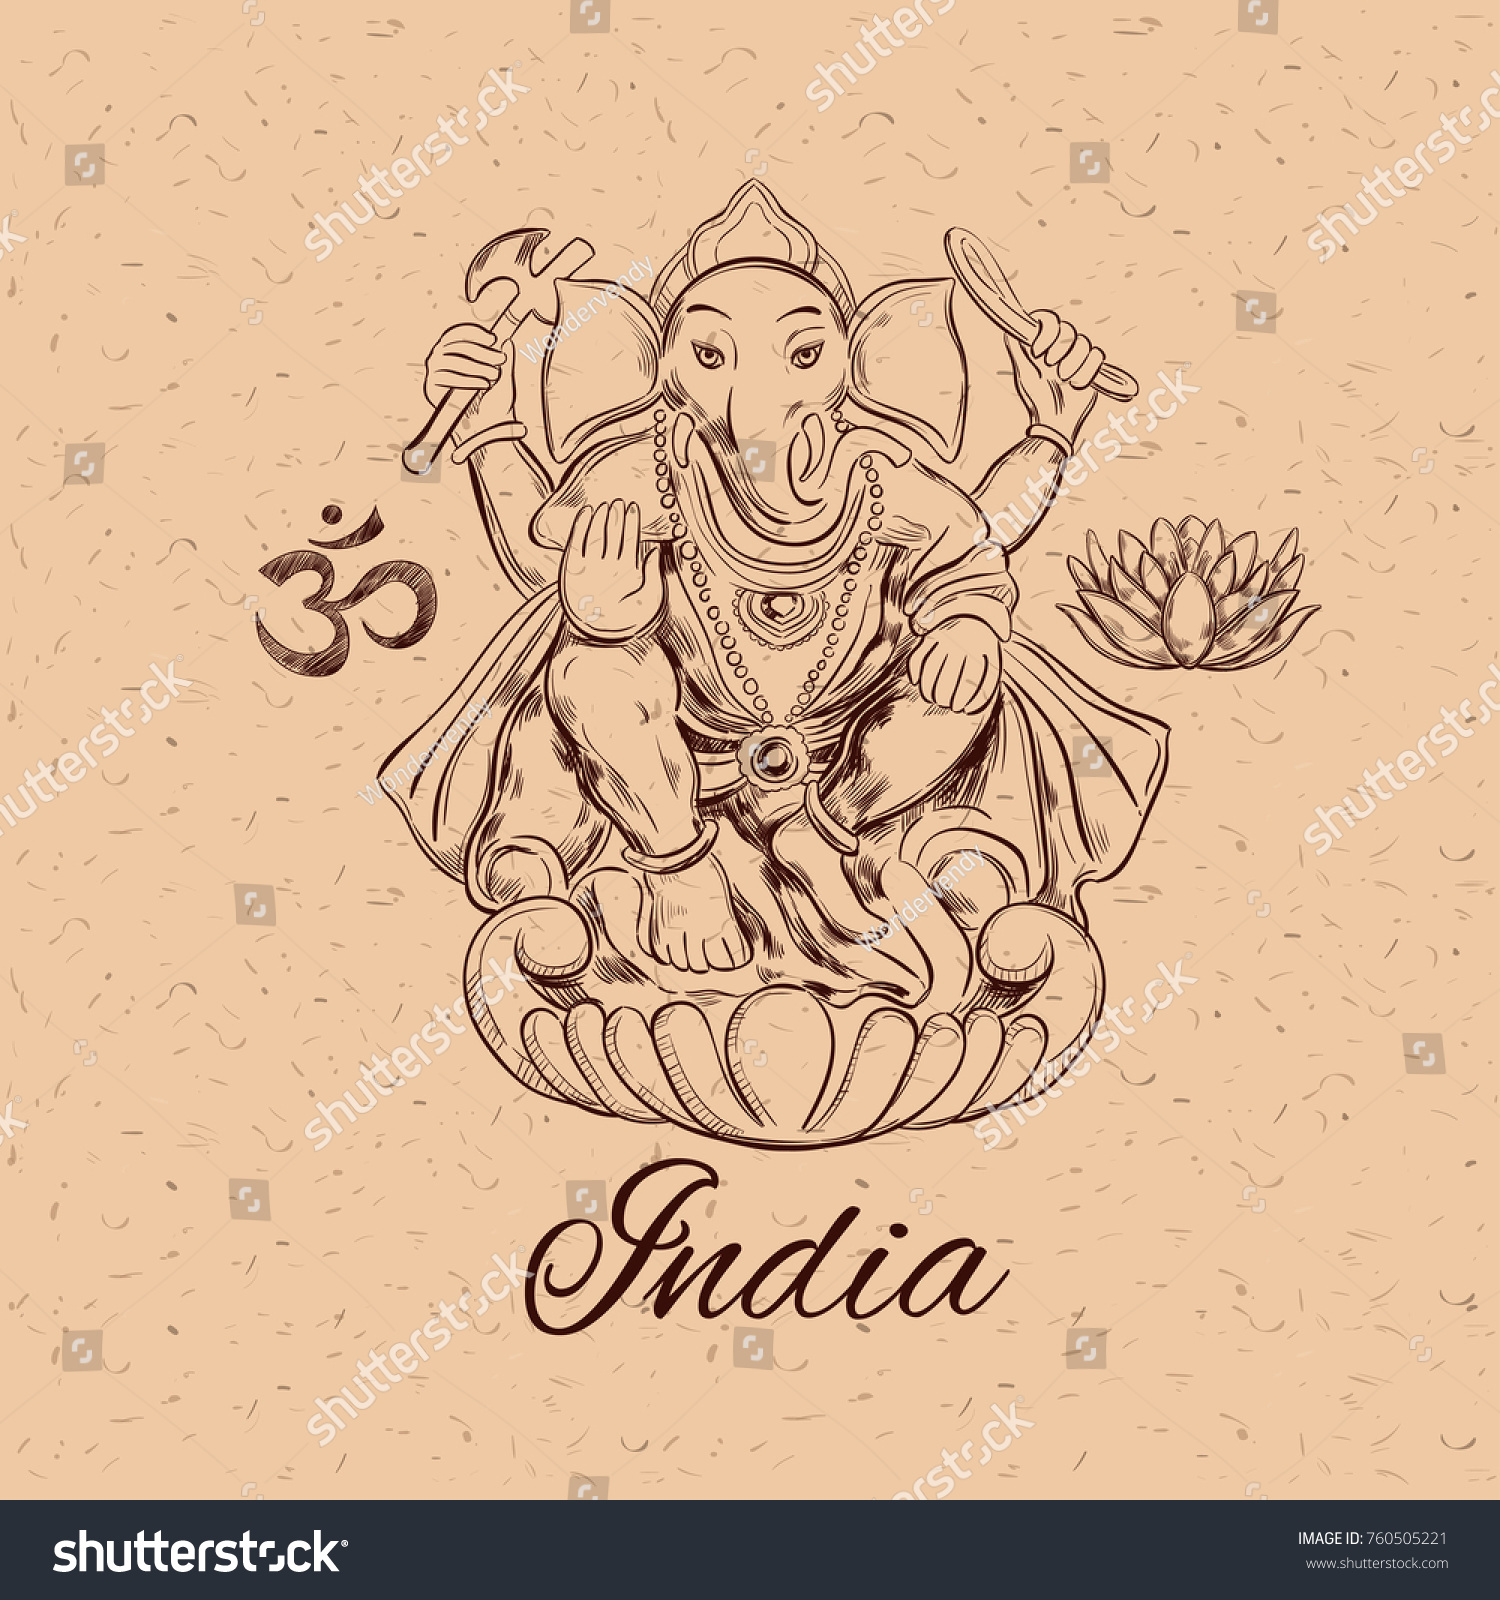 Lord Ganesha Hinduism Symbol Prosperity Overcoming Stock Vector